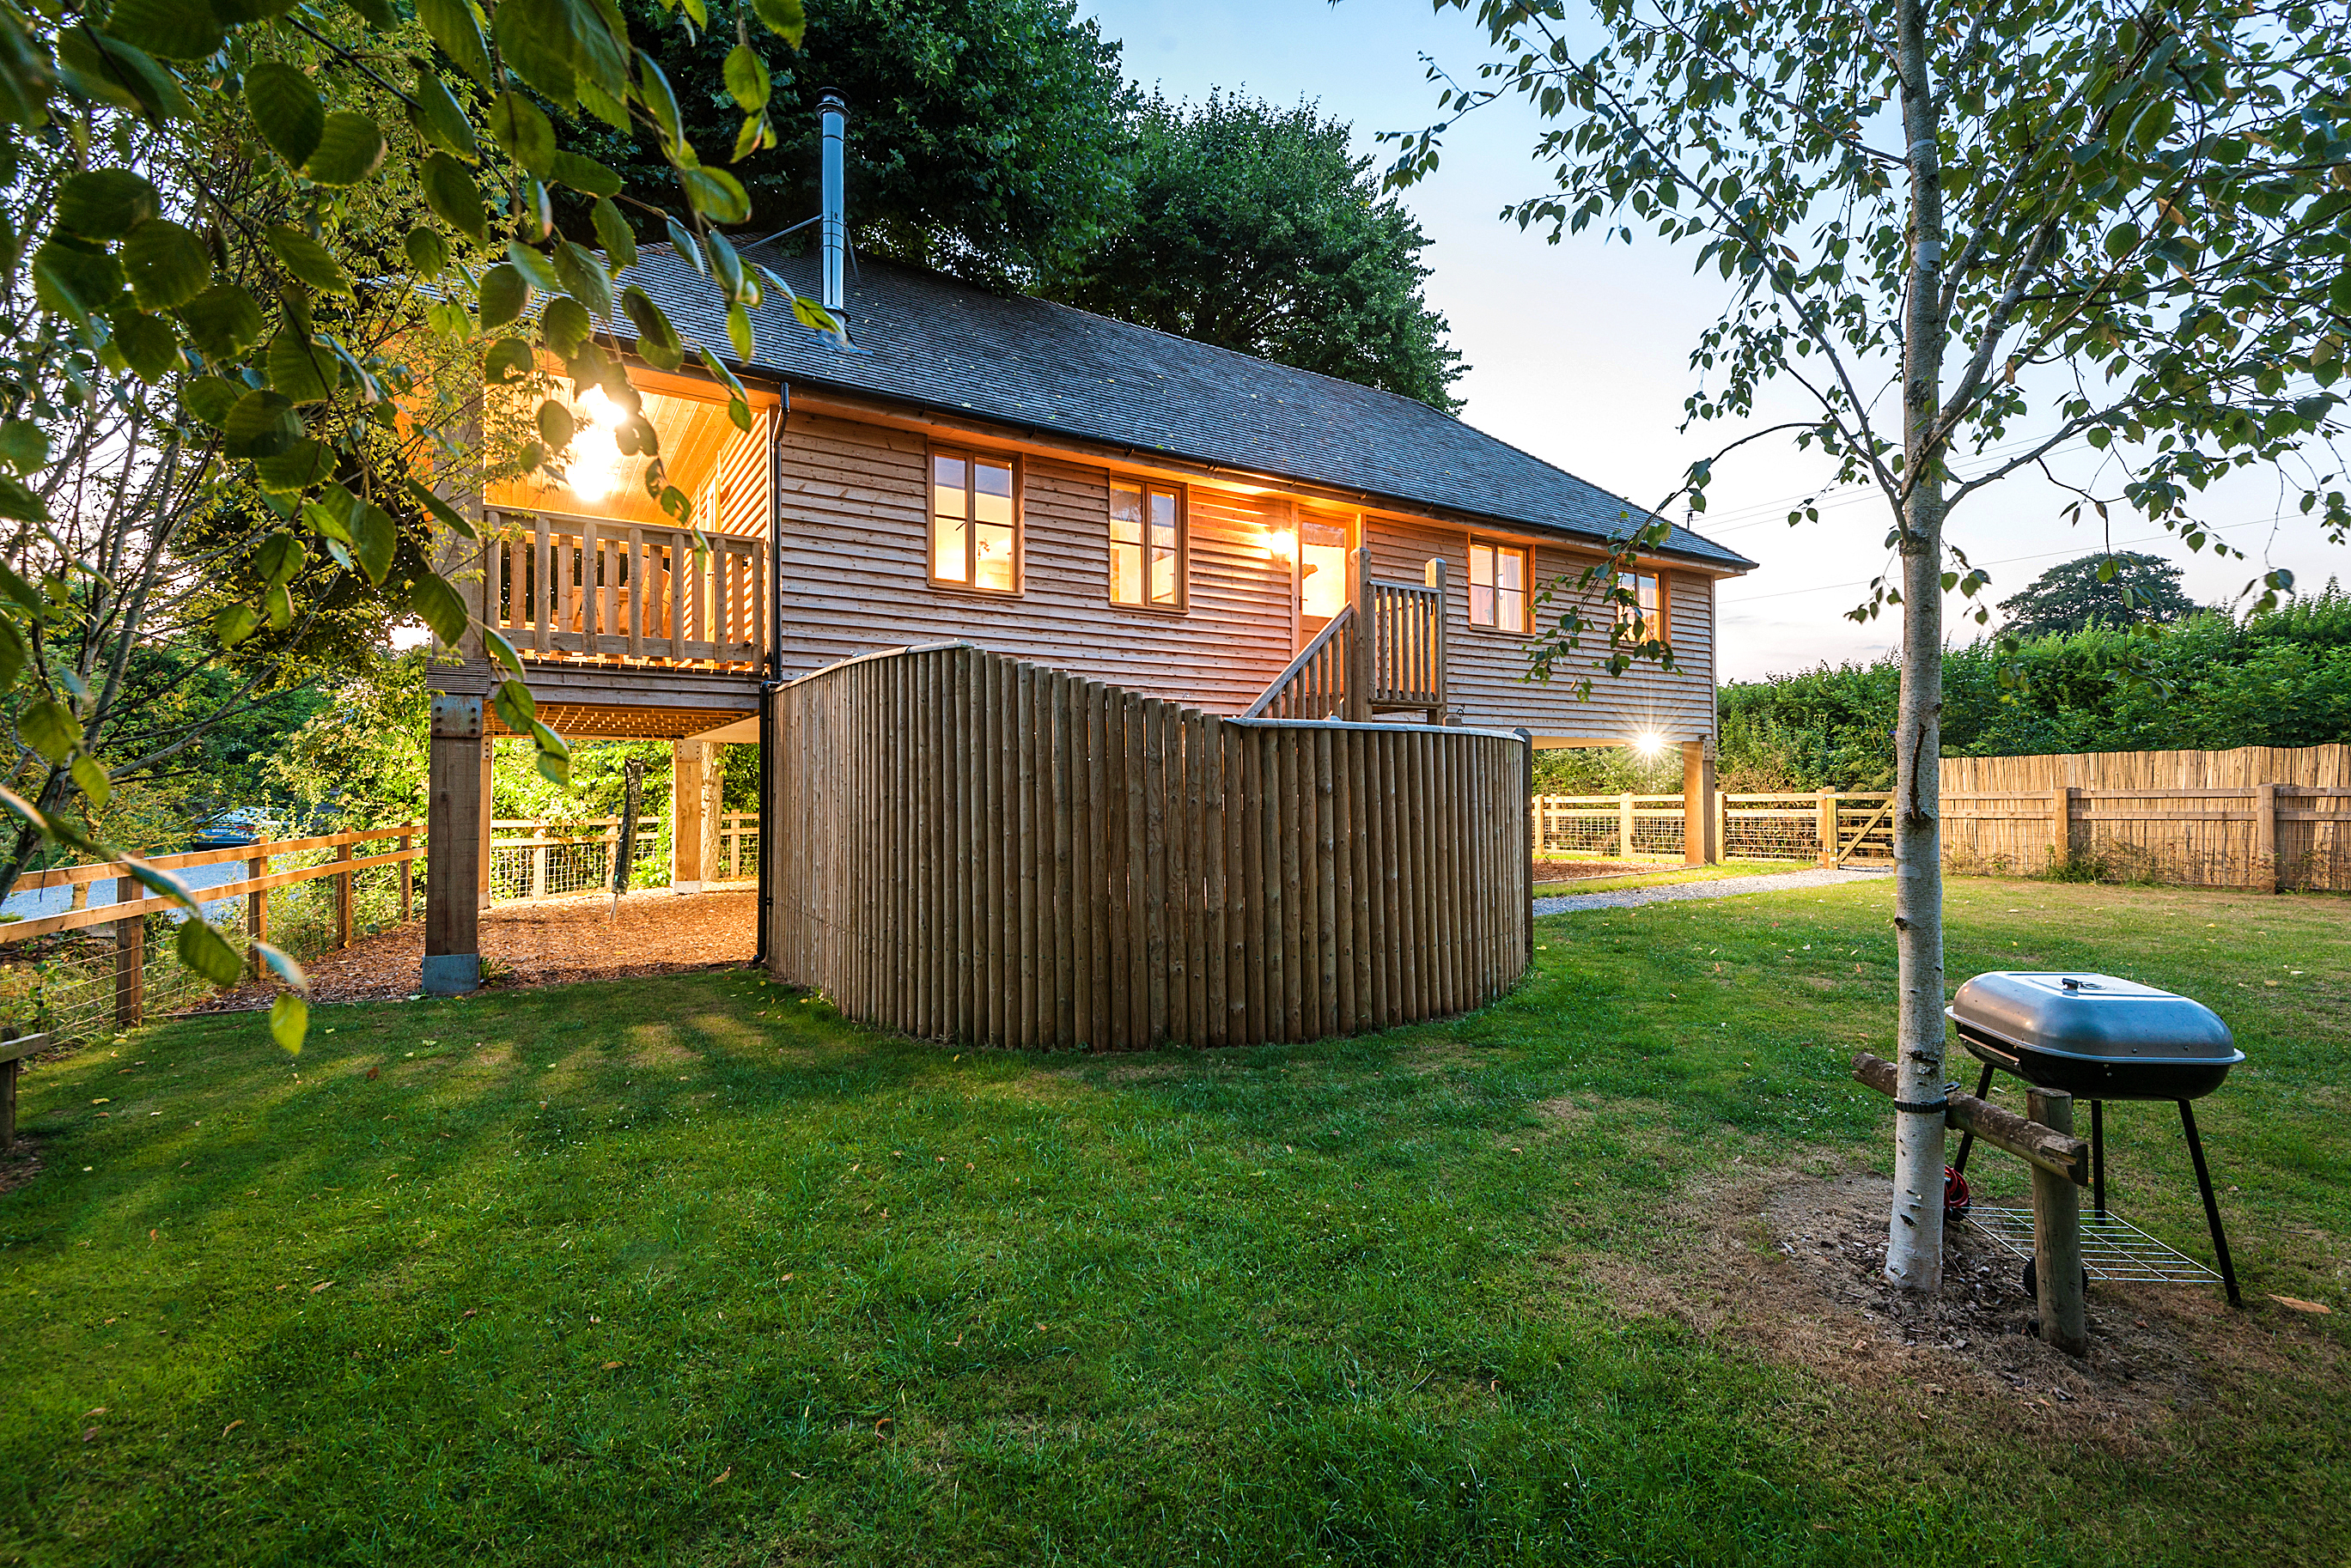 Holiday accommodation + swimming pool  in Near the Quantock Hills and Exmoor, South West, West Country